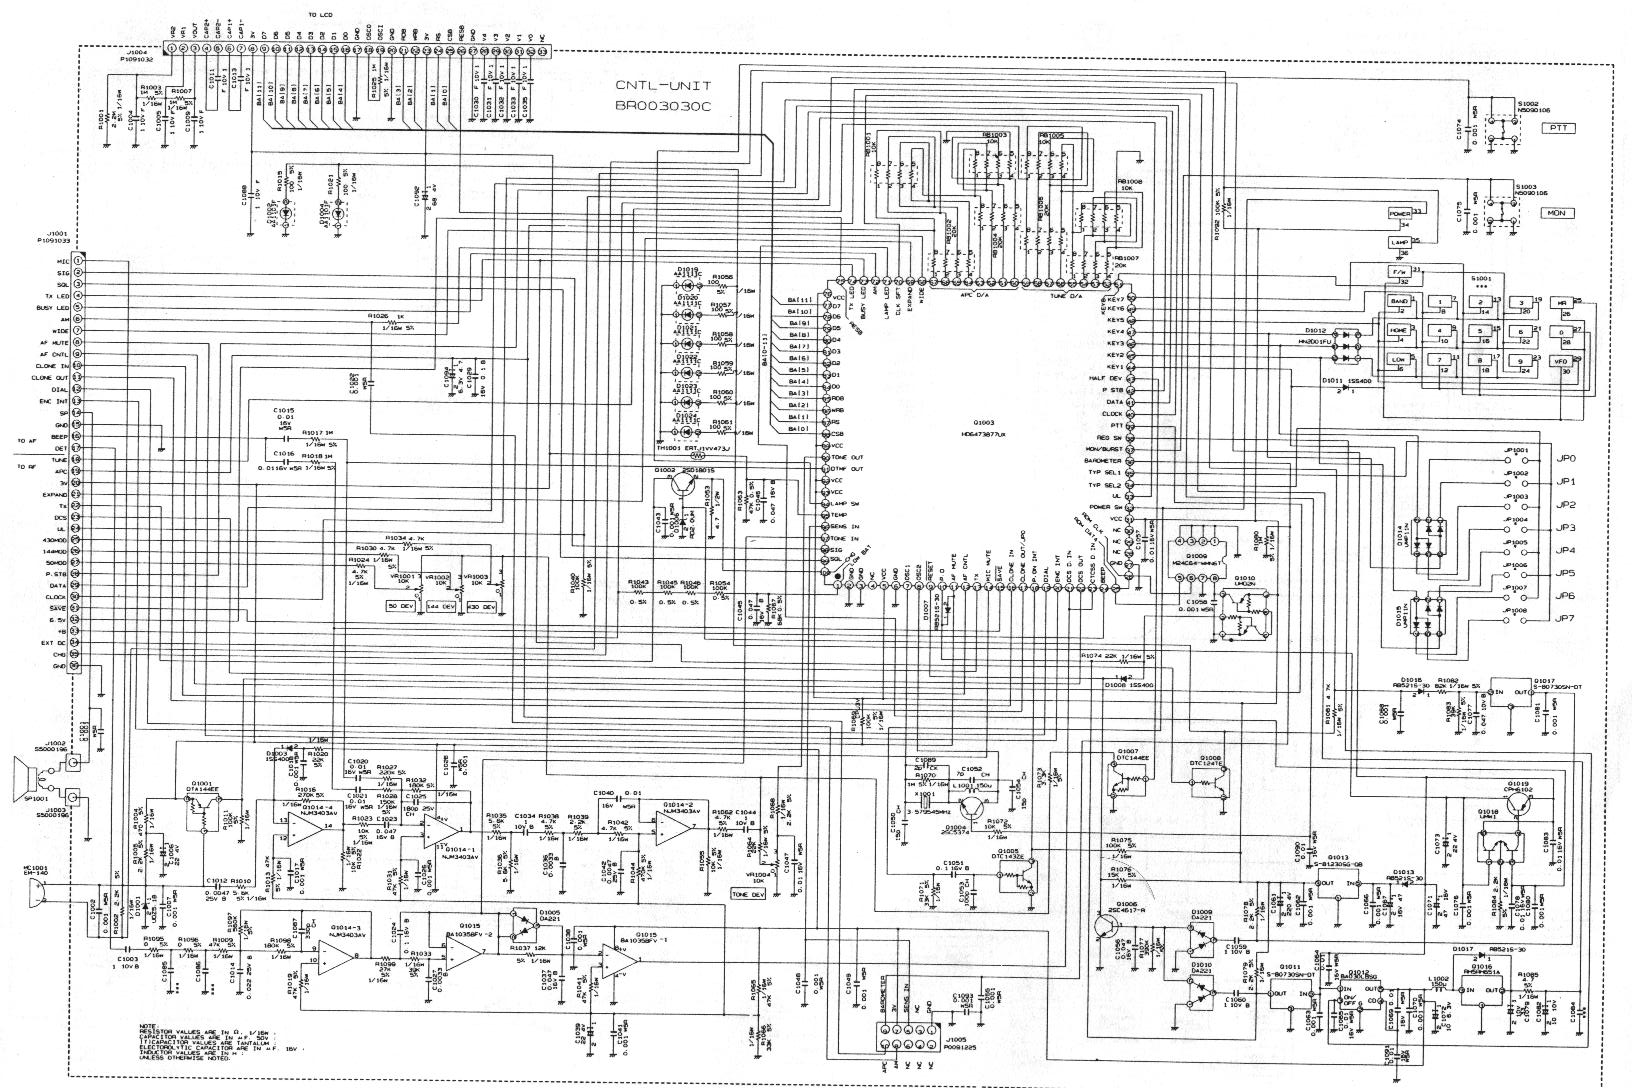 YAESU VX 5 Schematic b index of pub radio_manuals yaesu Yaesu G-450A at readyjetset.co